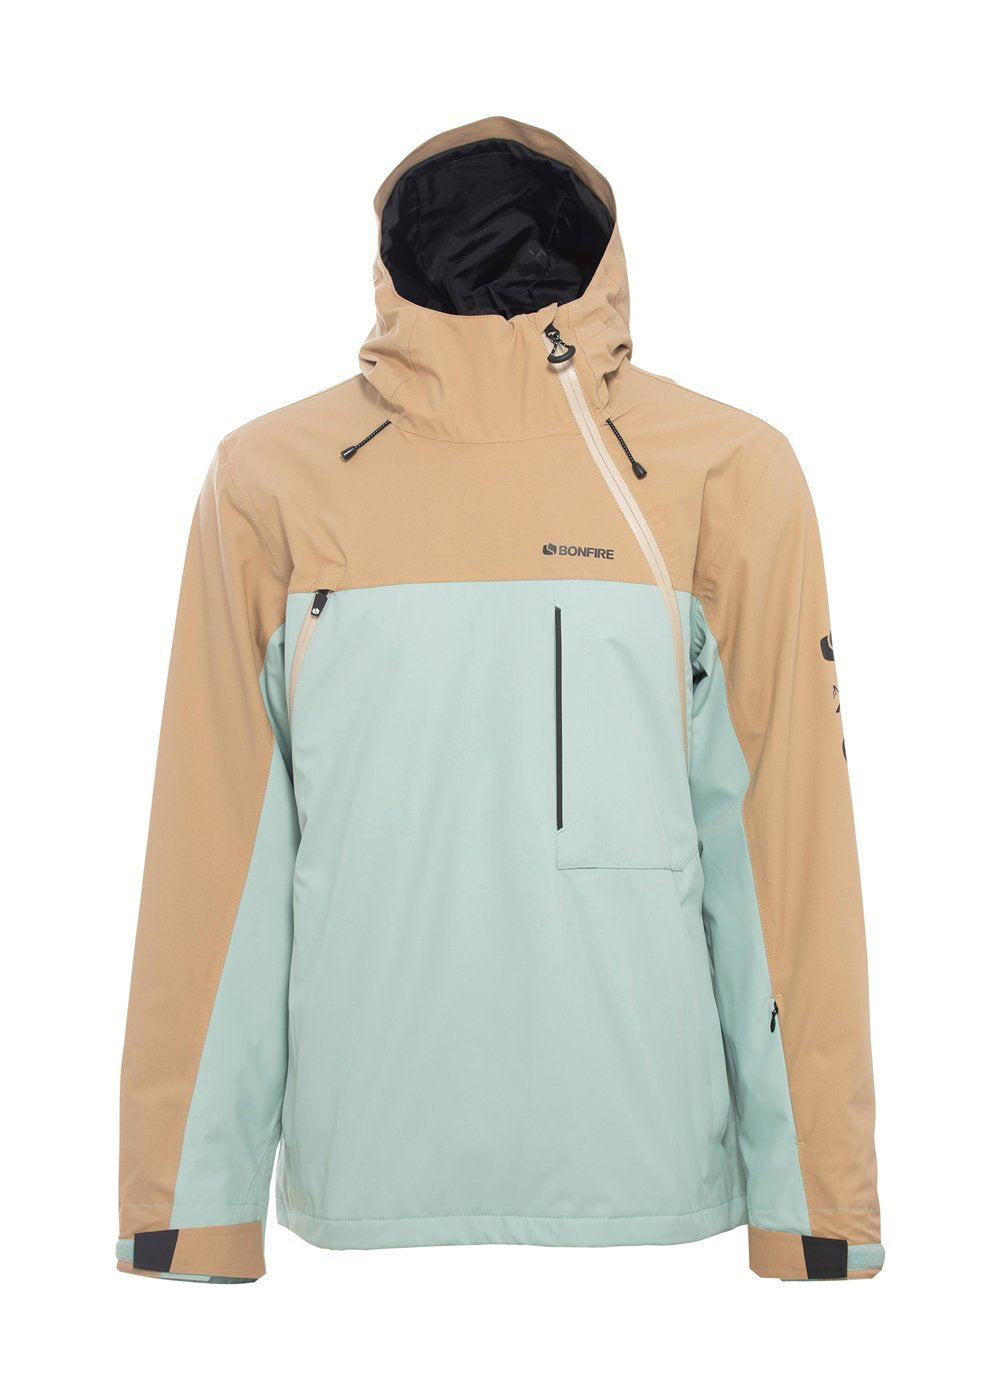 BETA STRETCH PULLOVER ANORAK JACKET (UNISEX COLORWAY)